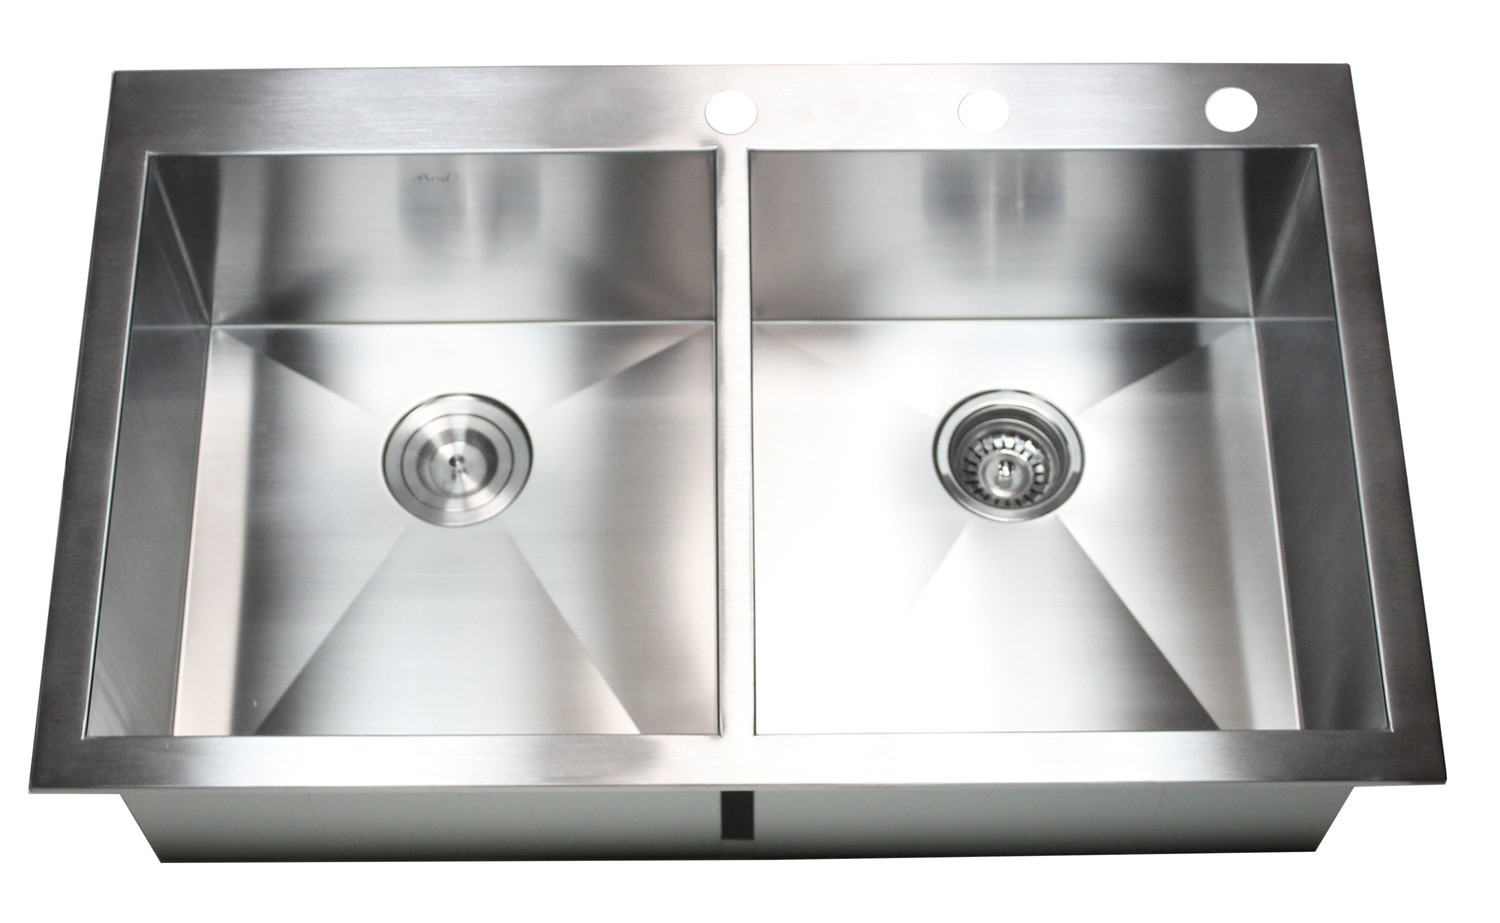 Stainless Steel Double Bowl Kitchen Sinks 36 inch top mount drop in stainless steel double bowl kitchen sink 36 inch top mount drop in stainless steel double bowl kitchen sink zero radius design workwithnaturefo